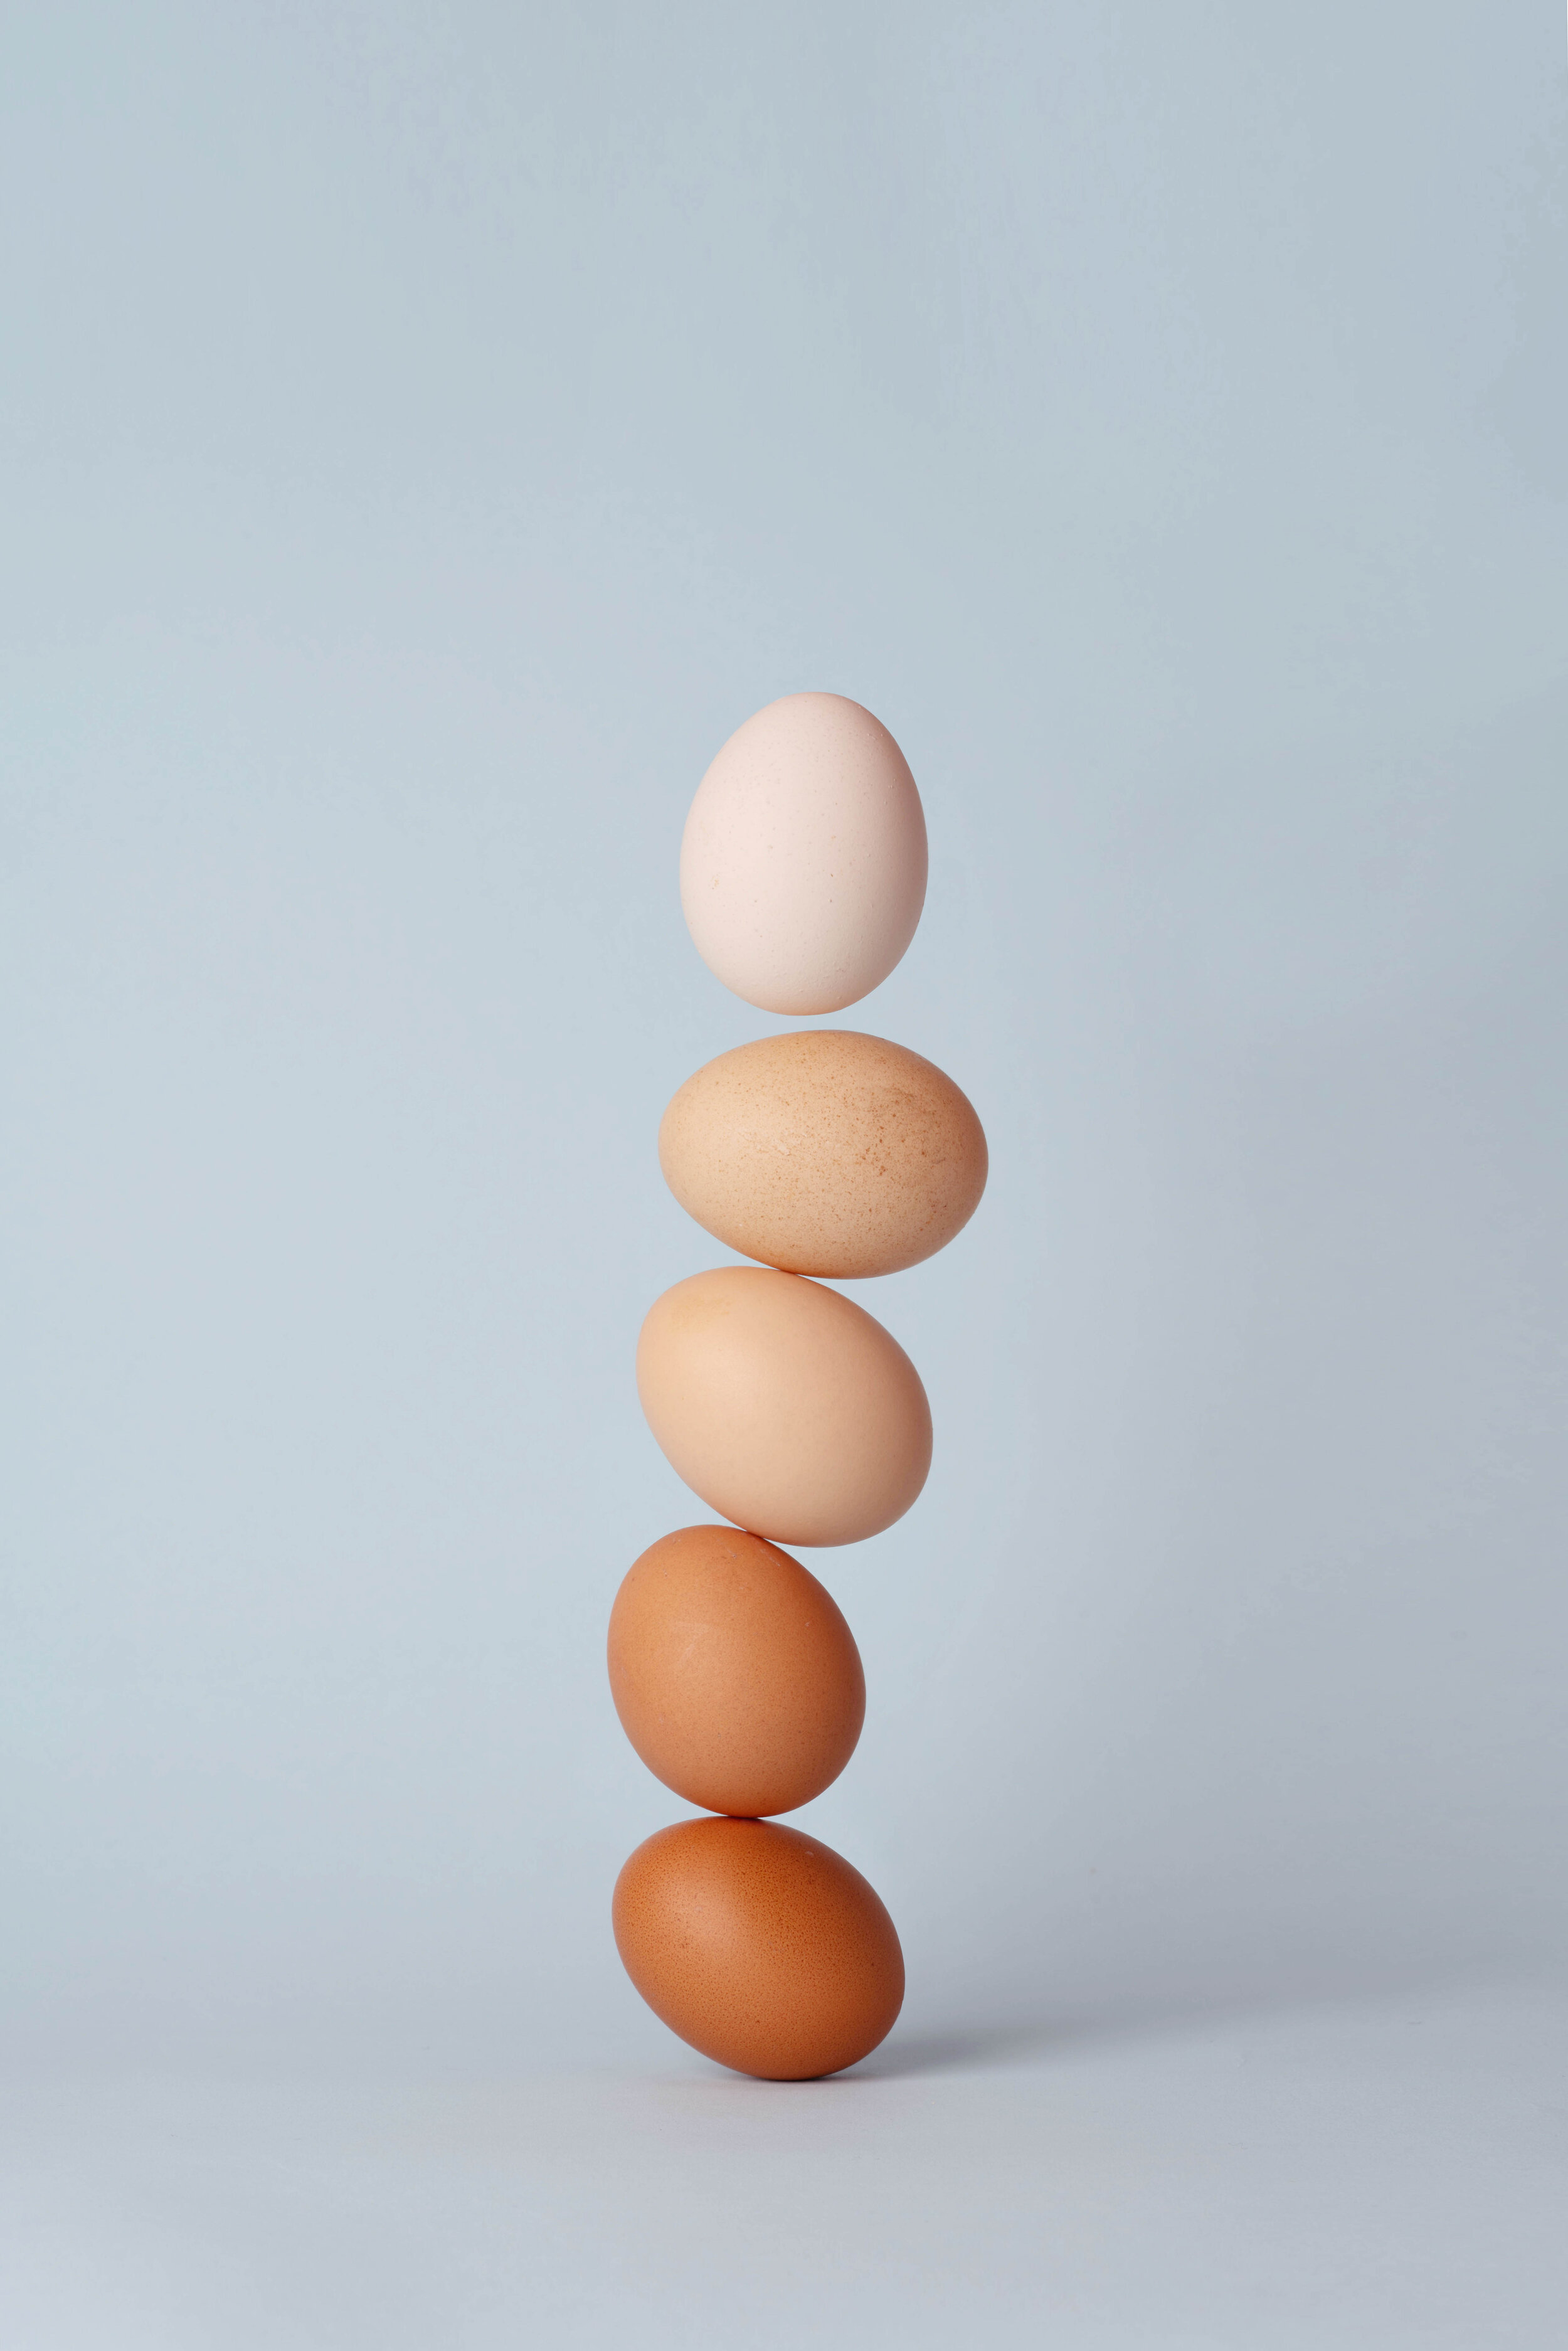 The B vitamins found in eggs offer excellent boosts in brain health.